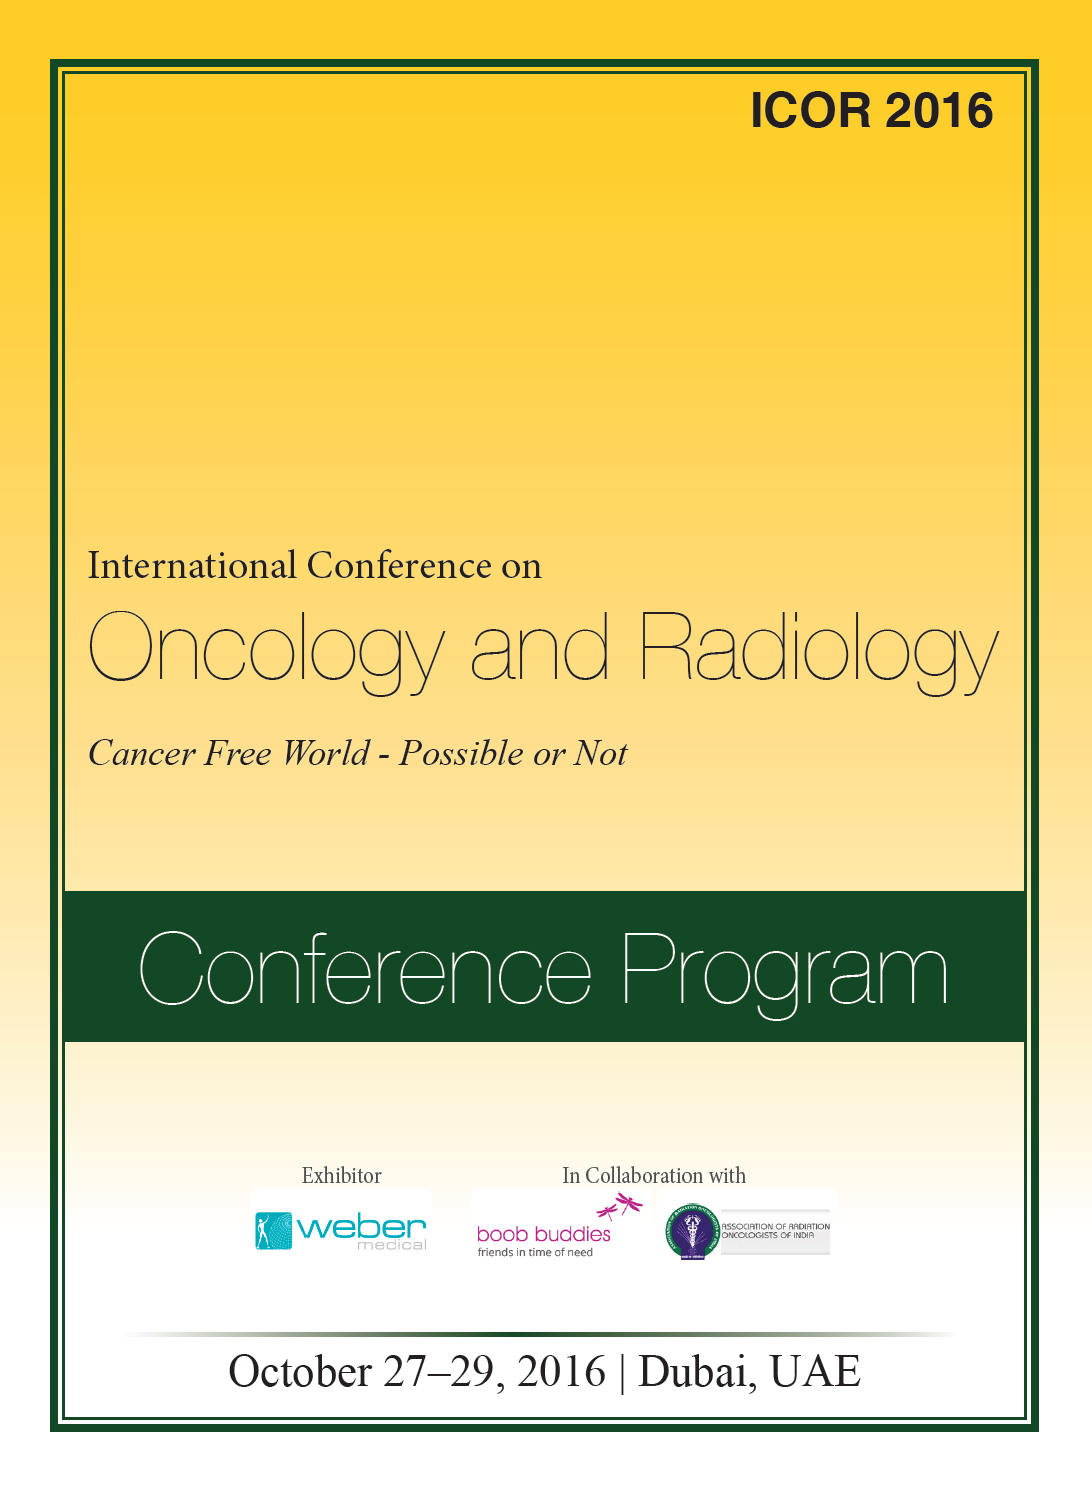 International Conference on Oncology and Radiology  Program